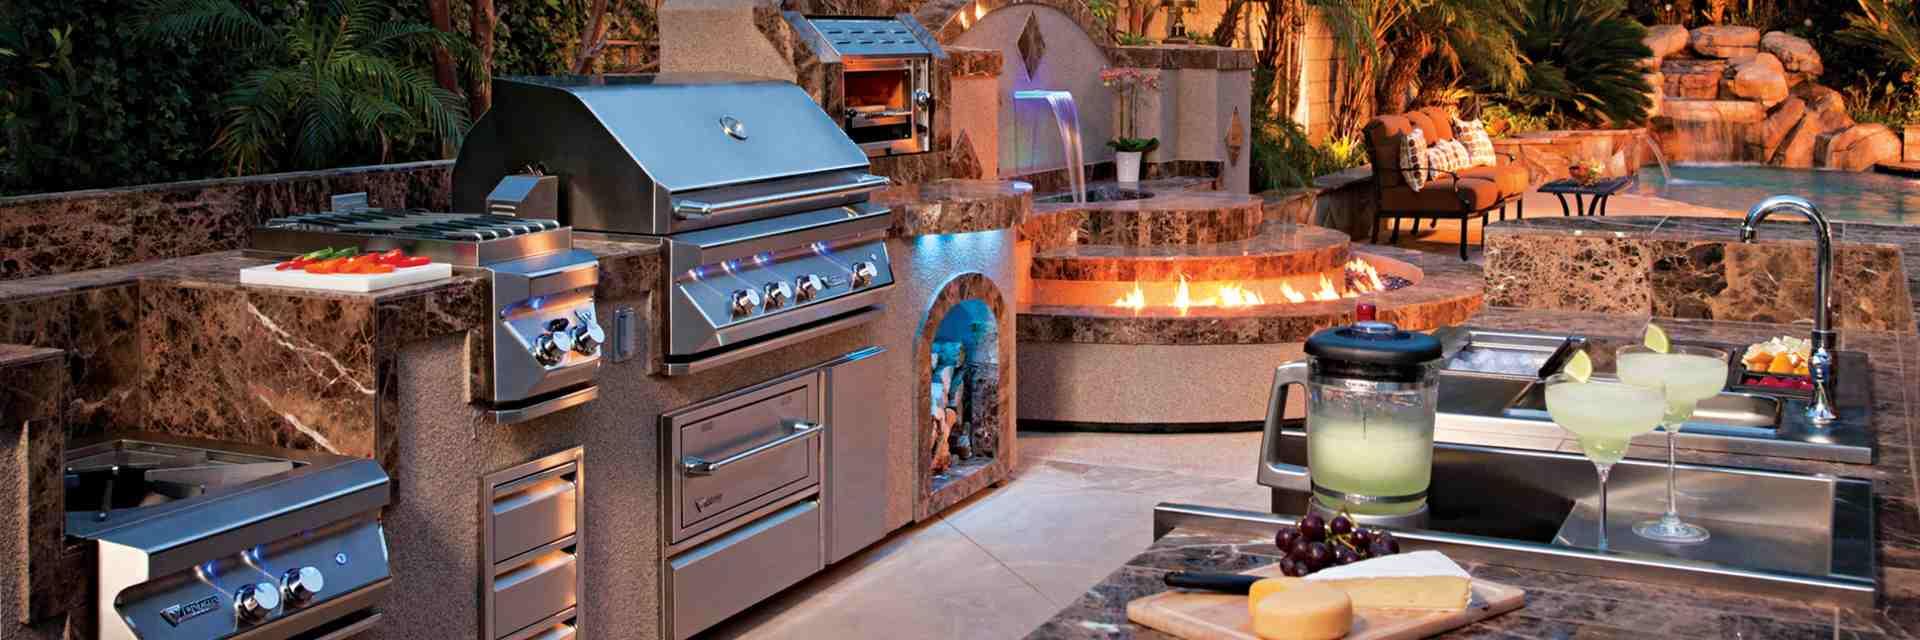 buck factory outlet fireplaces stoves inserts u0026 bbq u0027s